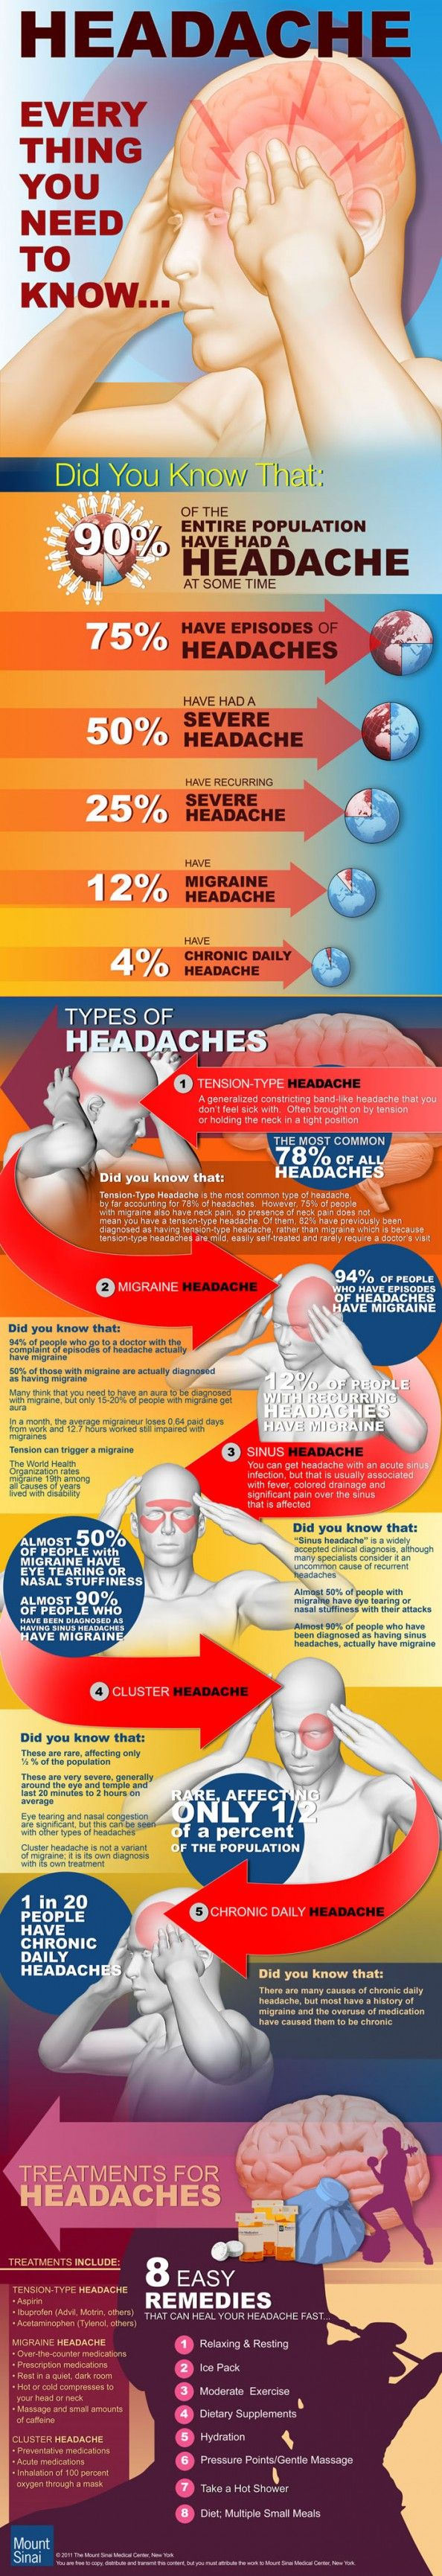 This Infographic Provides Information About Headaches It Provides A Description Of Different Types Of Headaches And It Provide Health Health Info Good To Know